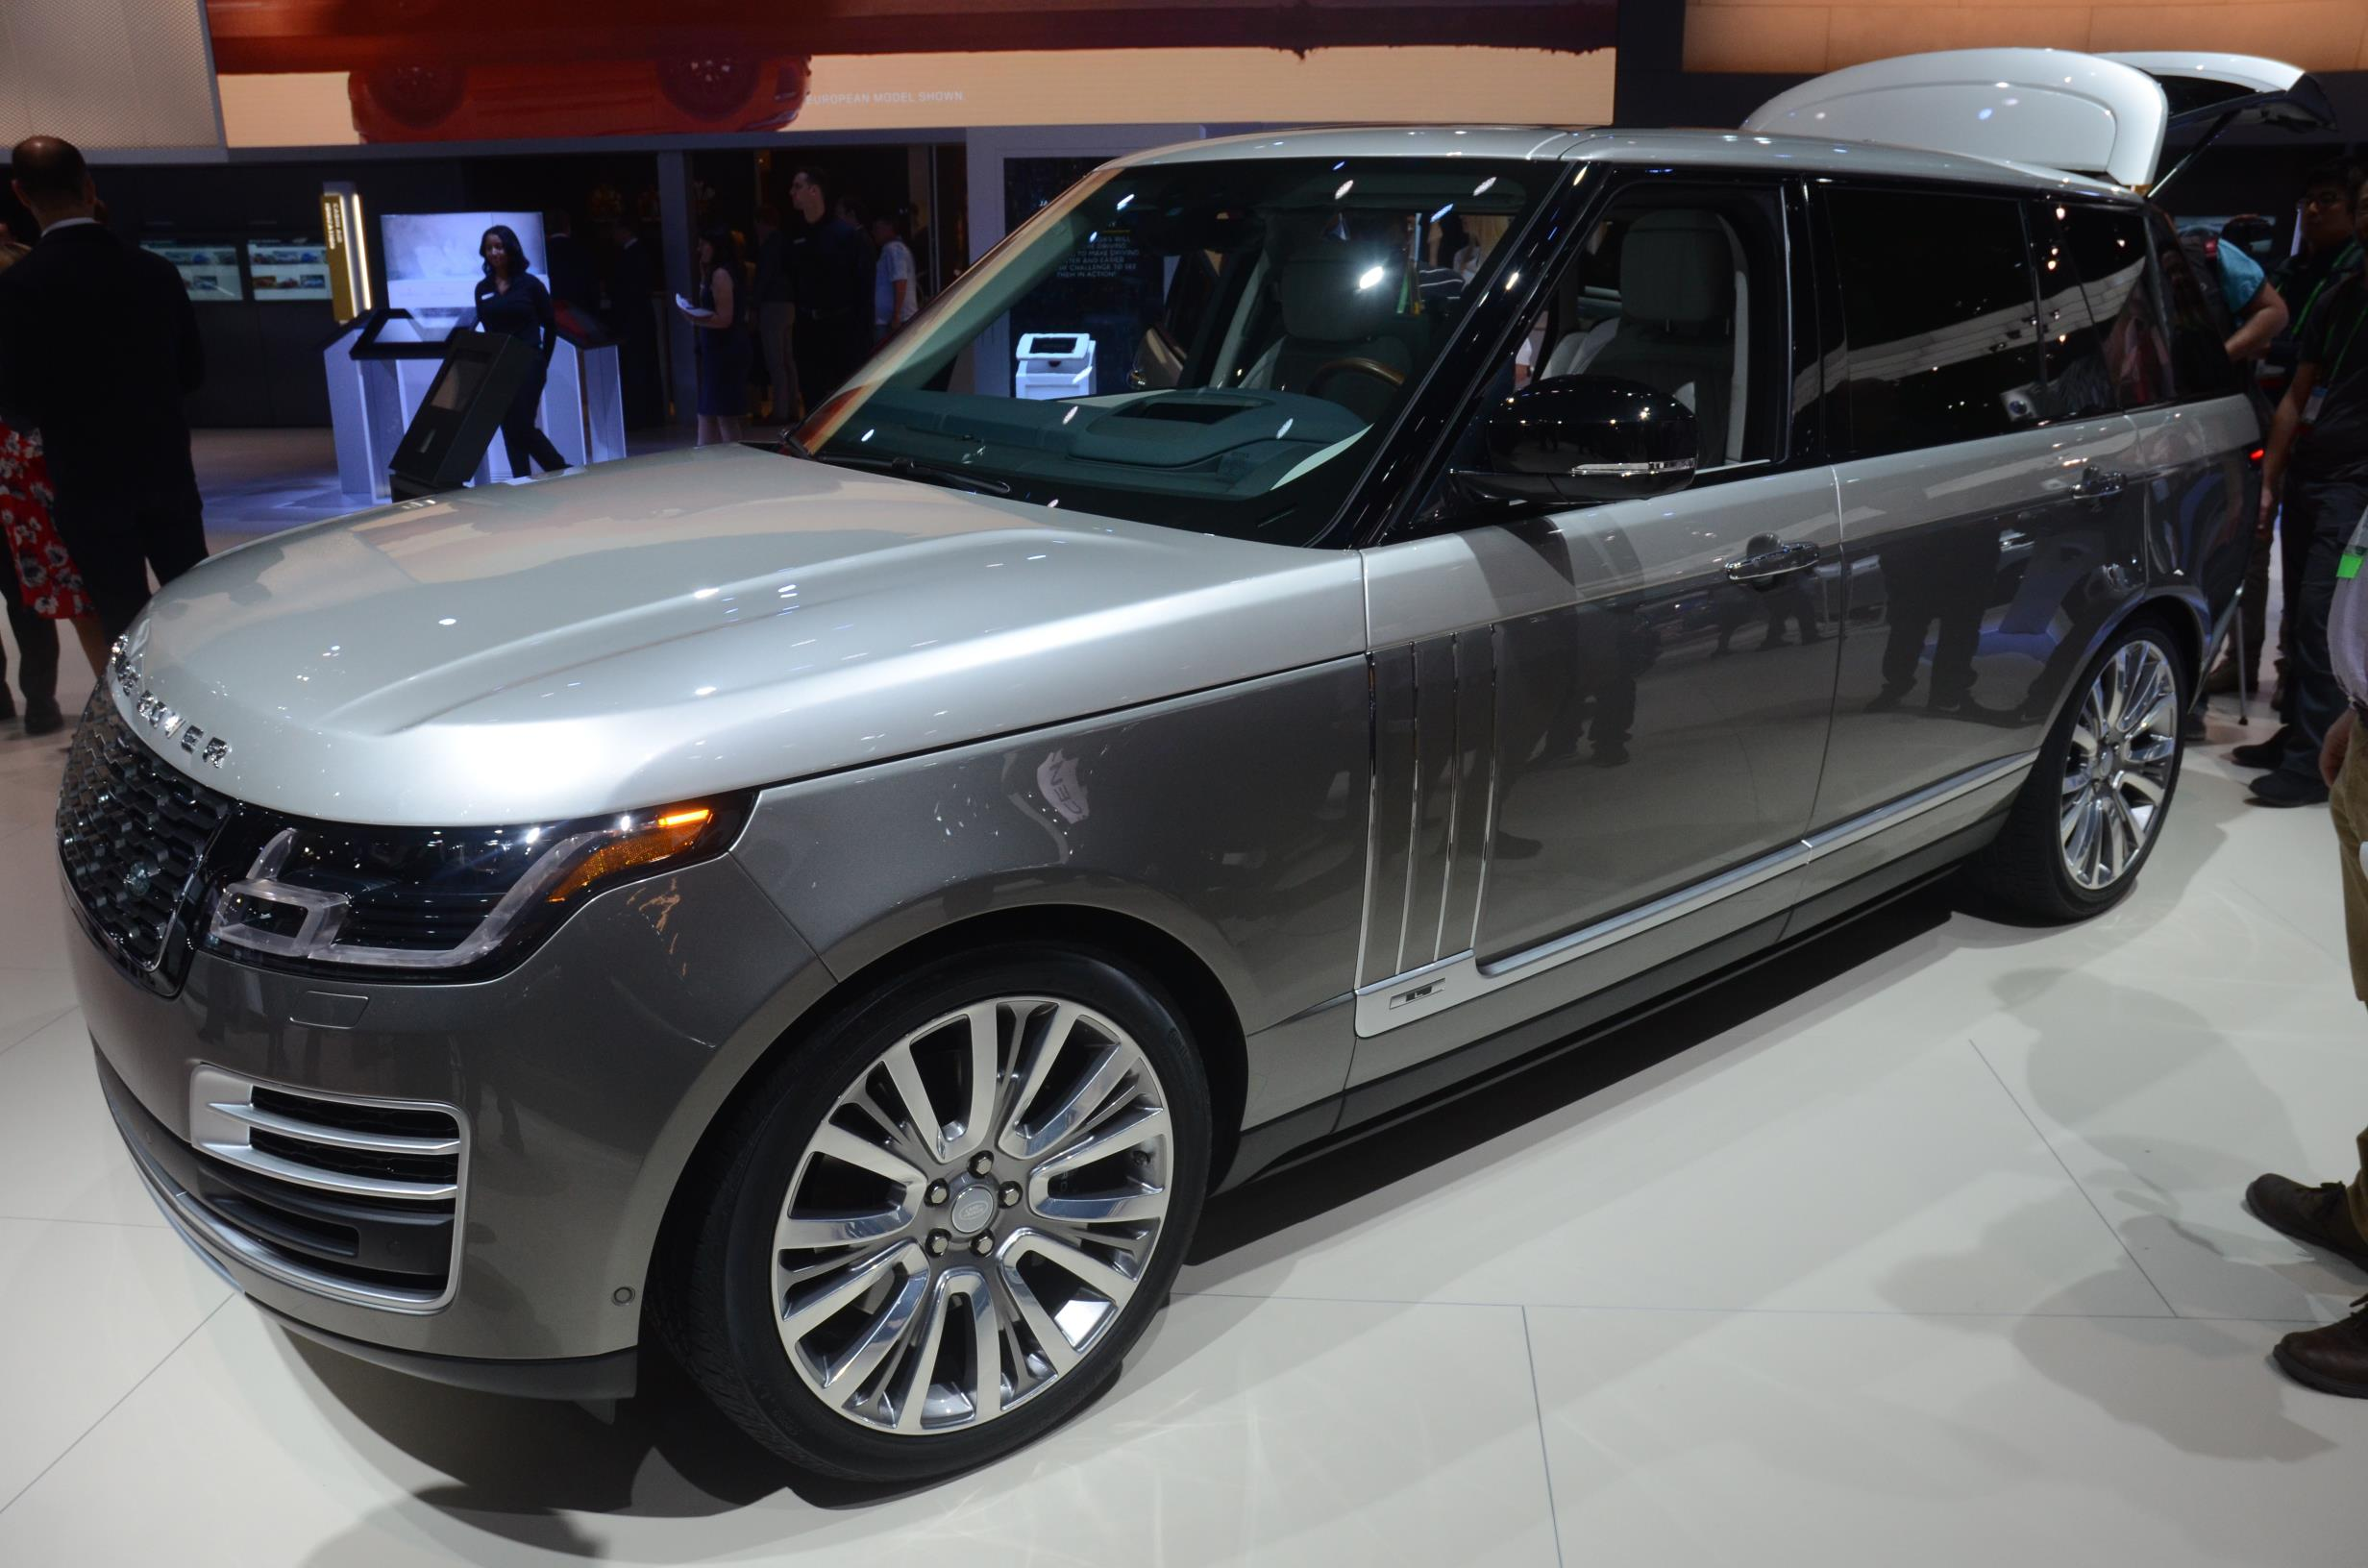 2018 the range rover svautobiography. Black Bedroom Furniture Sets. Home Design Ideas